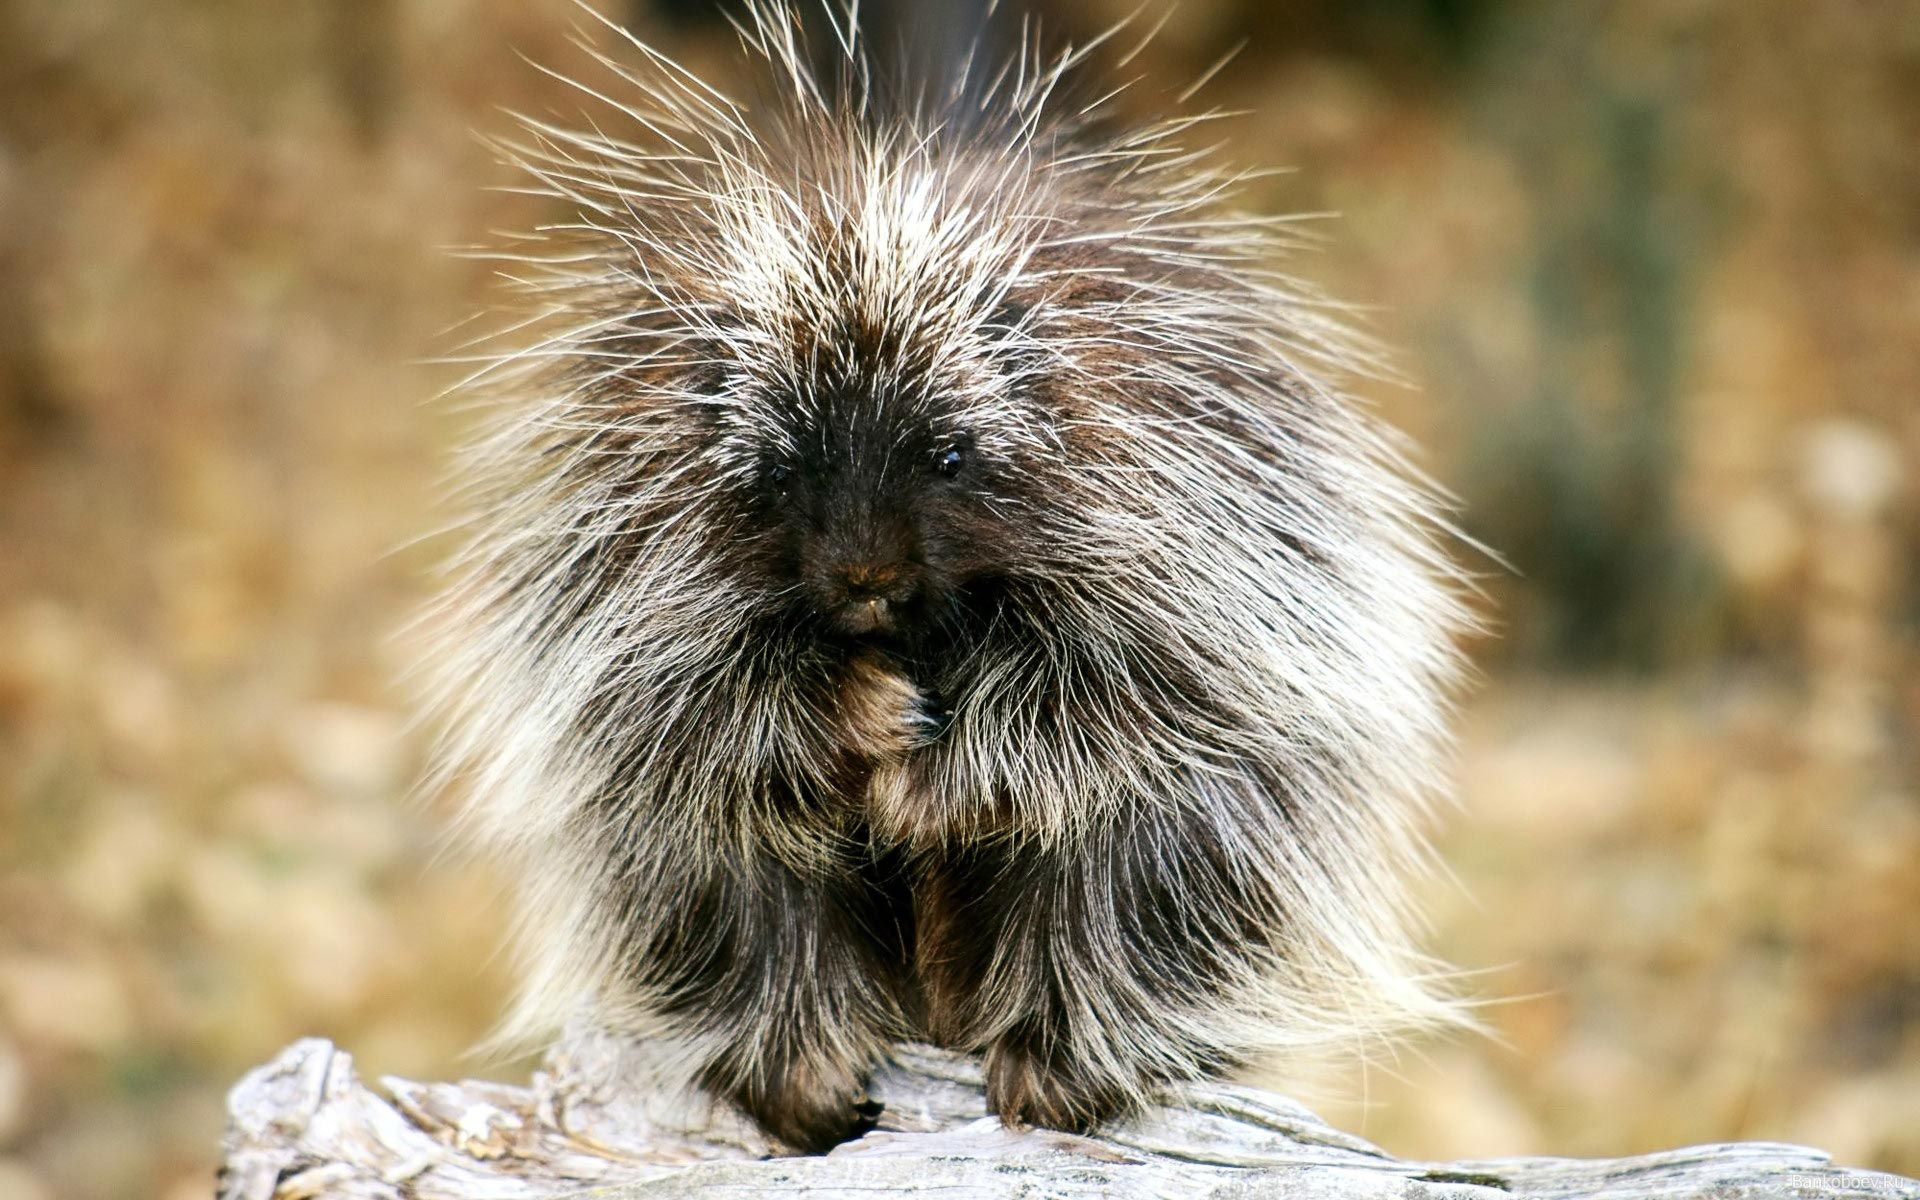 41 best Porcupines images on Pinterest | Wild animals, Animals and ...